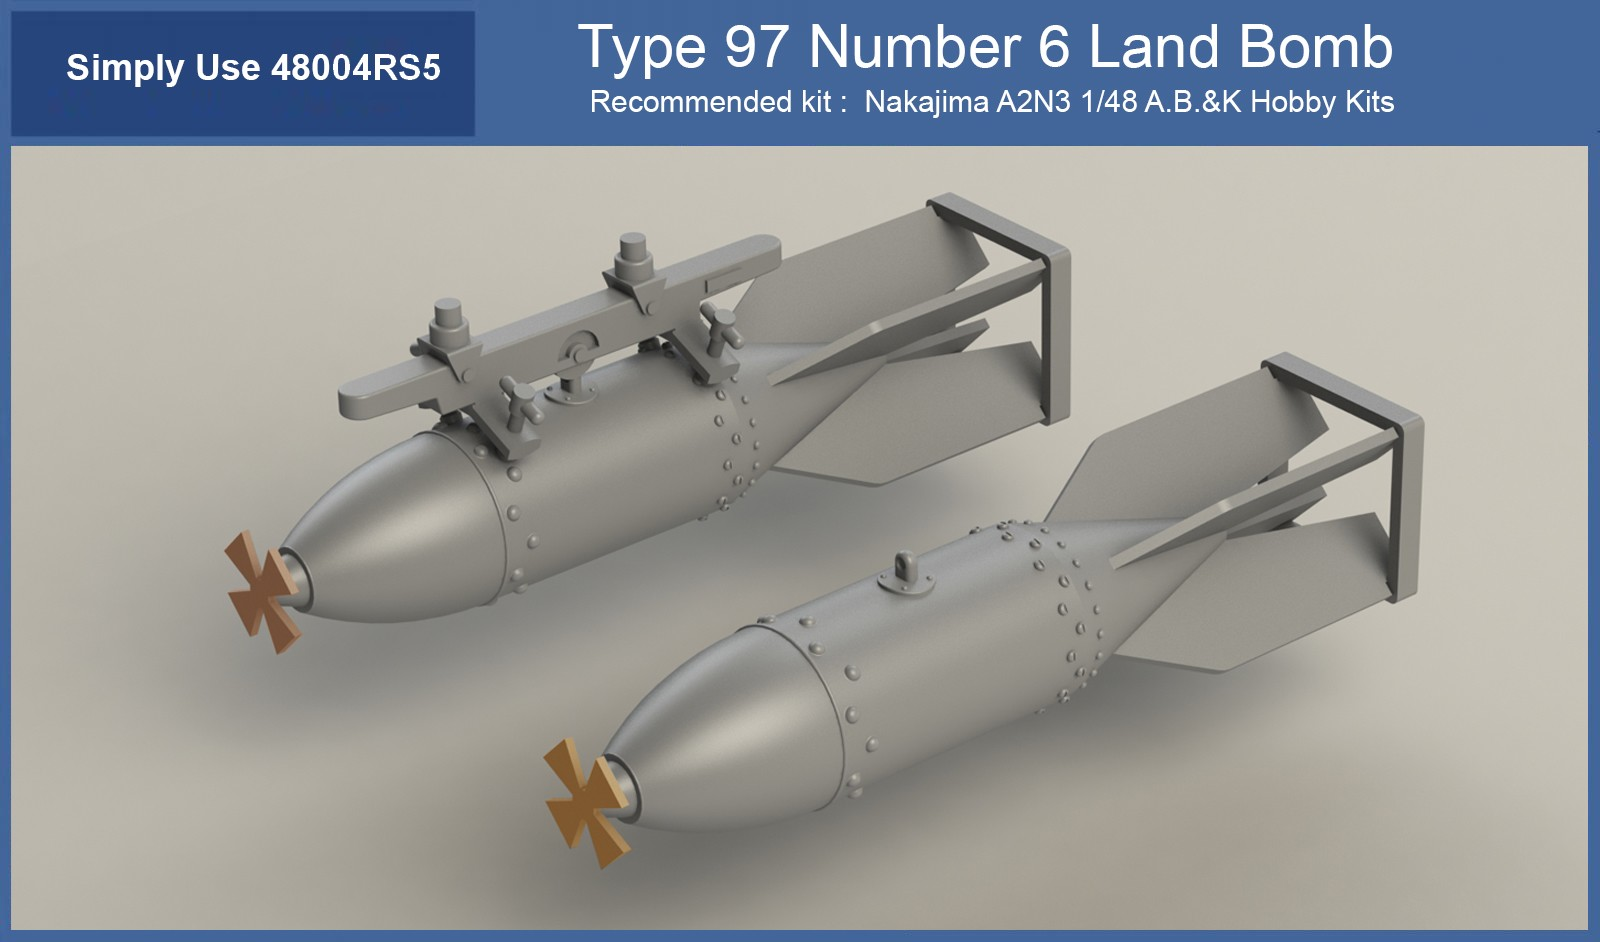 Type 97 Number 6 Land Bomb 1/48